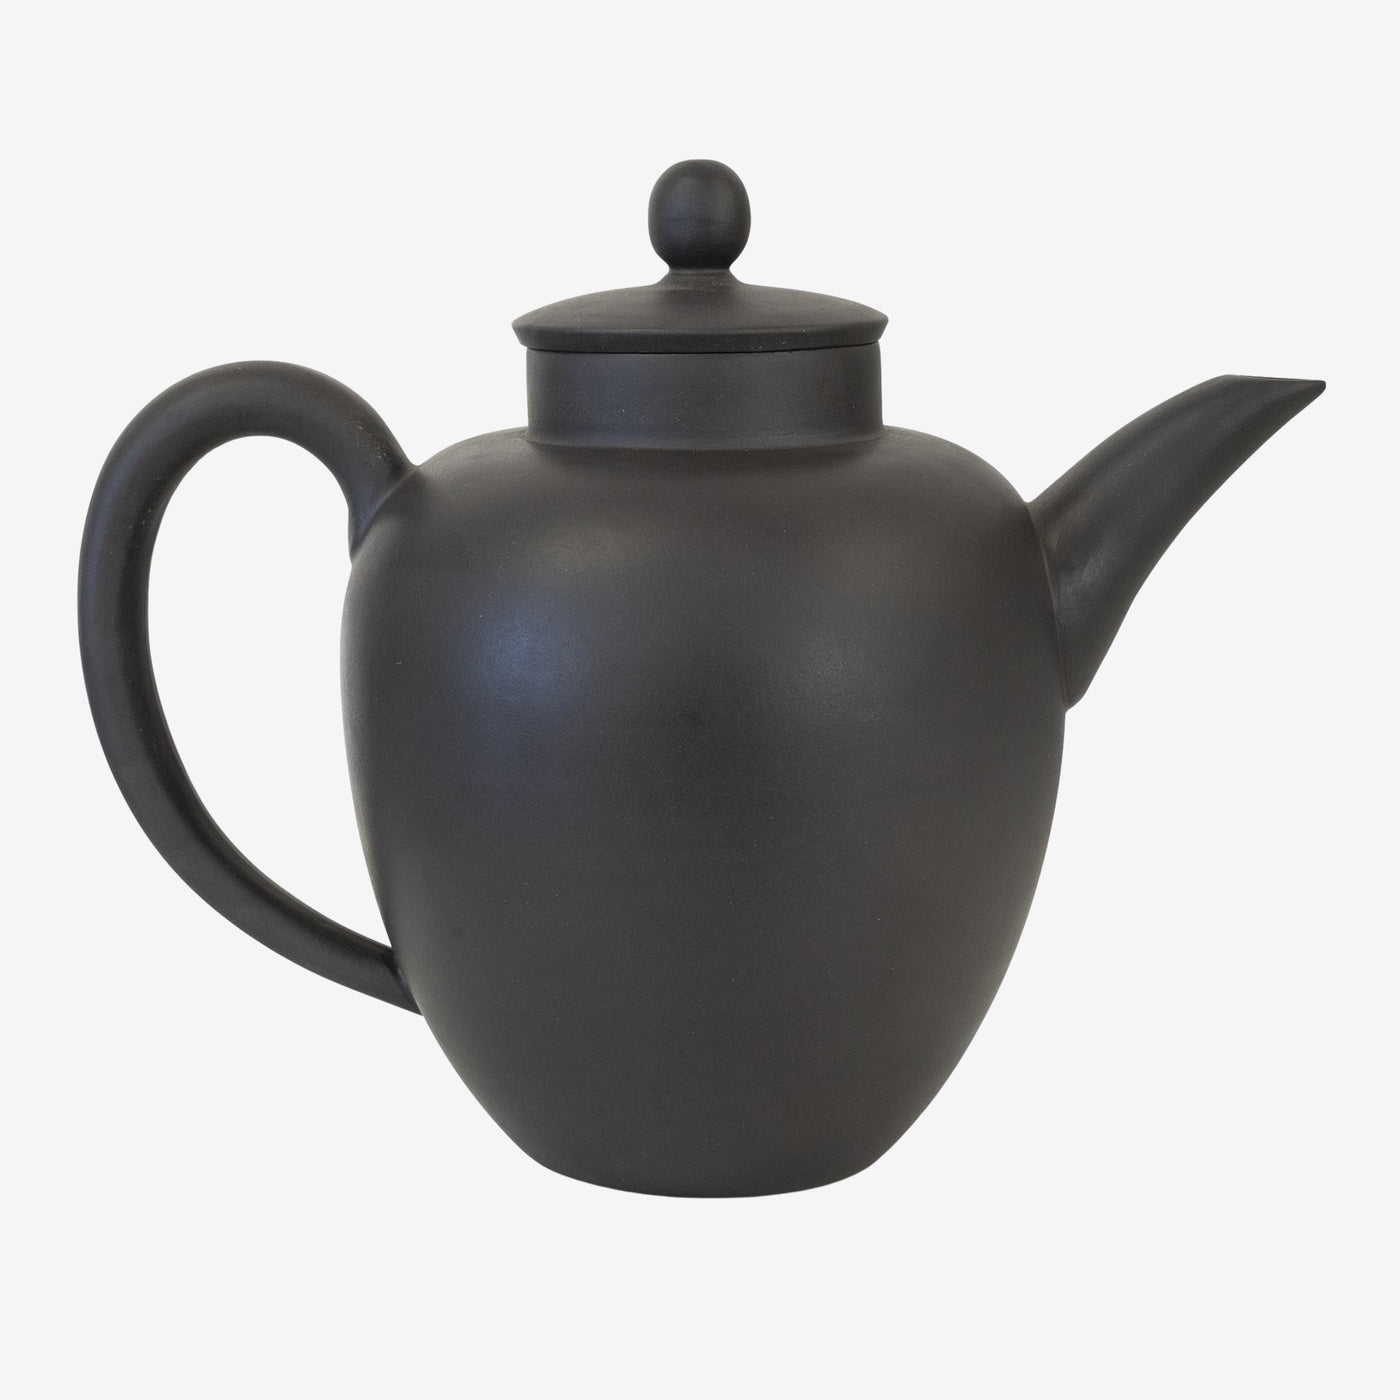 Yixing Oval Teapot, Black